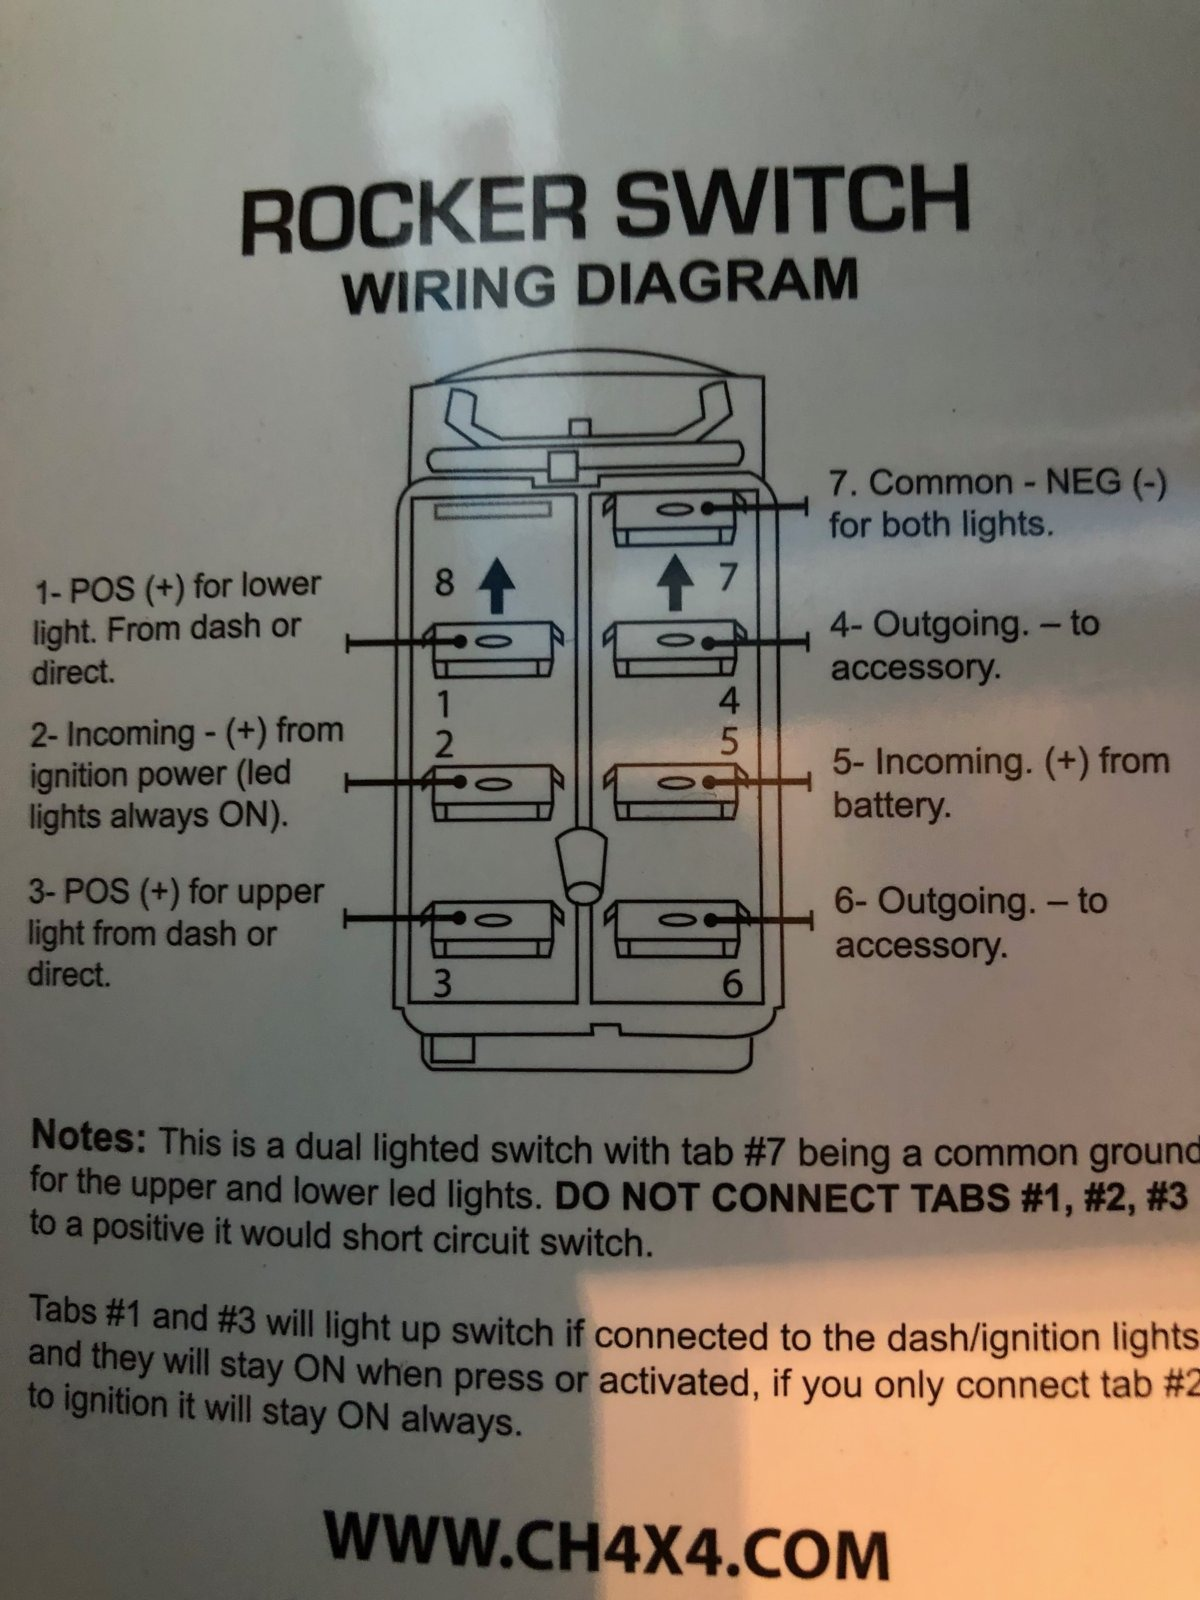 Atv Winch Rocker Switch Wiring - Changeover Wiring Diagram -  stereoa.tukune.jeanjaures37.fr | Winch Rocker Switch Wiring Diagram |  | Wiring Diagram Resource